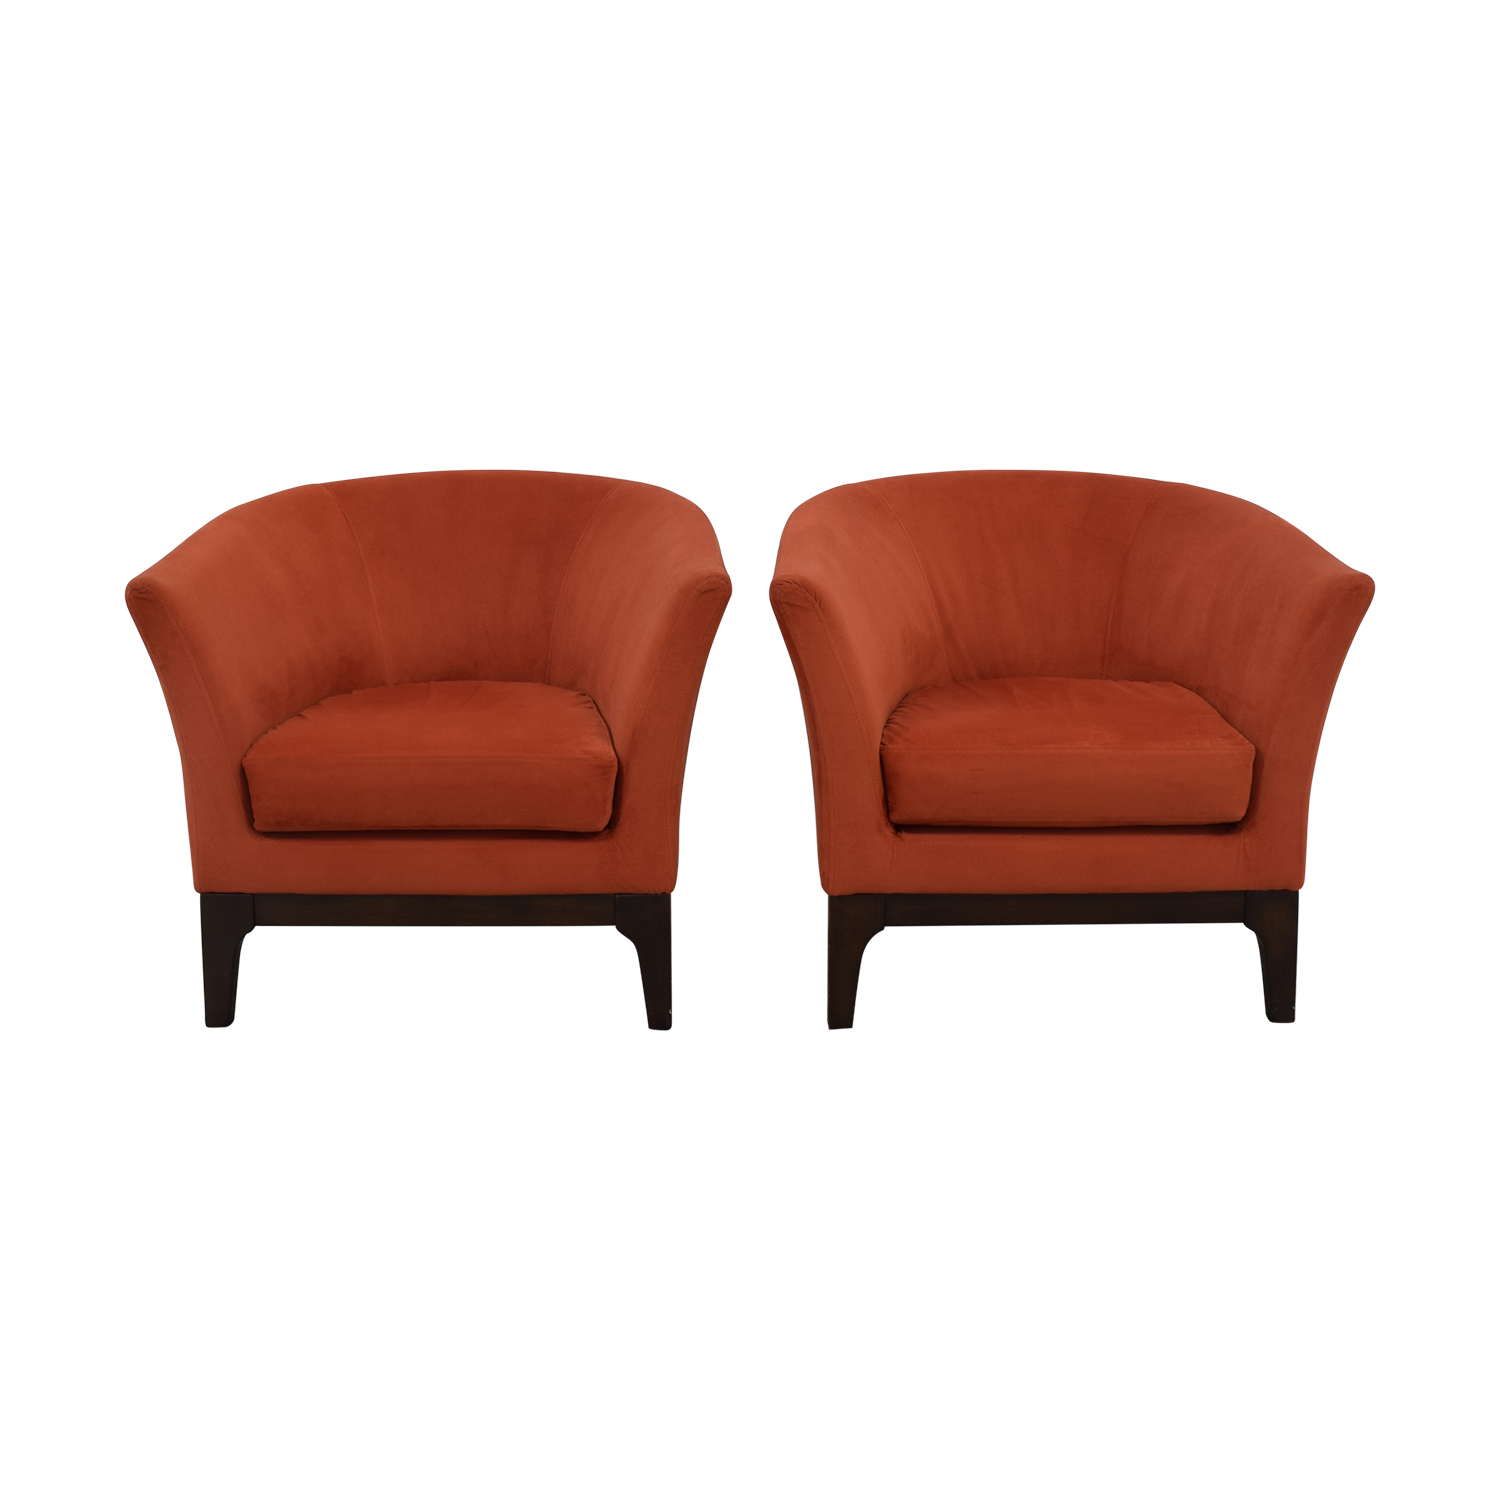 buy West Elm Tulip Chairs West Elm Accent Chairs